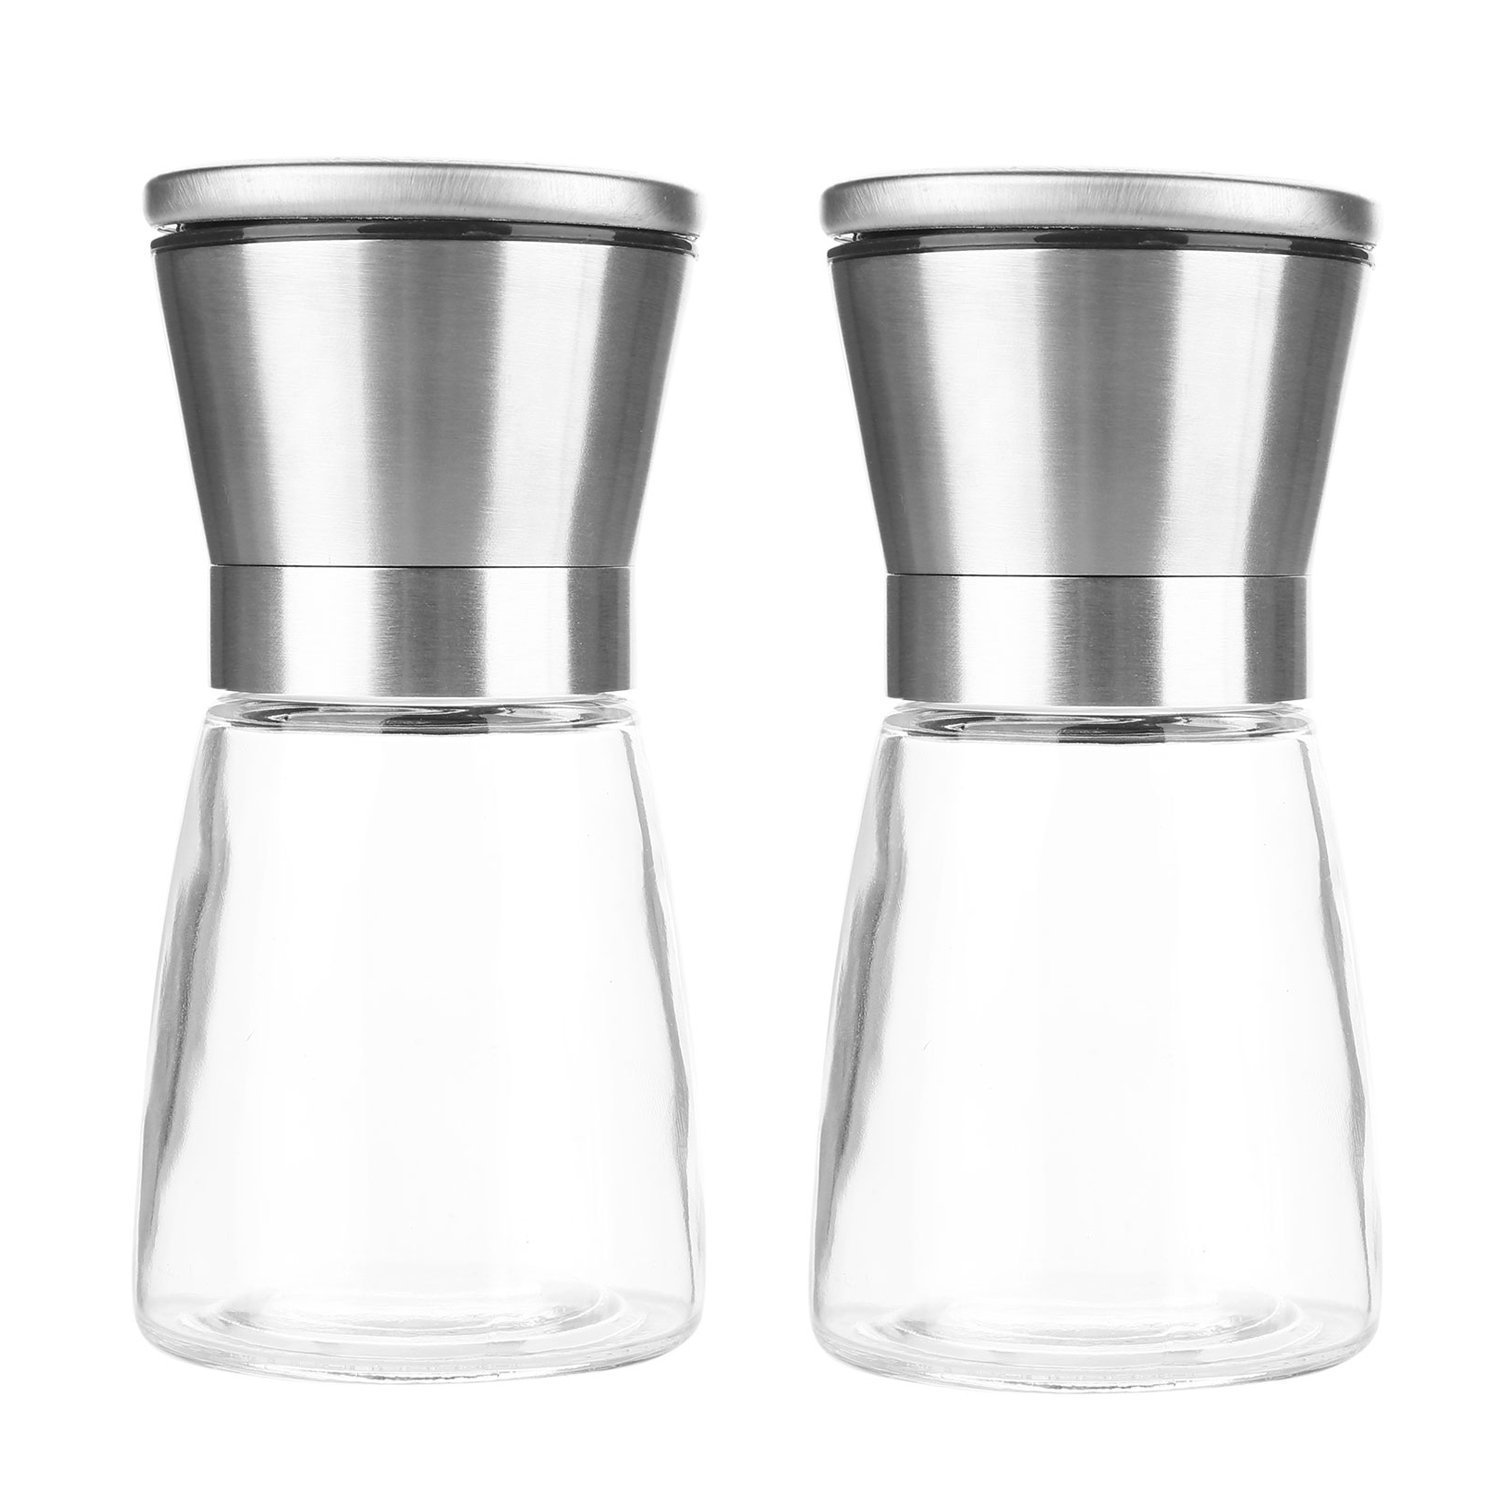 Etrech Manual Salt and Pepper Shakers Grinders Glass Bottle, Adjustable Coarseness, Made of 304 Stianless Steel, Lead-free Glass (2 Pack) by Eva